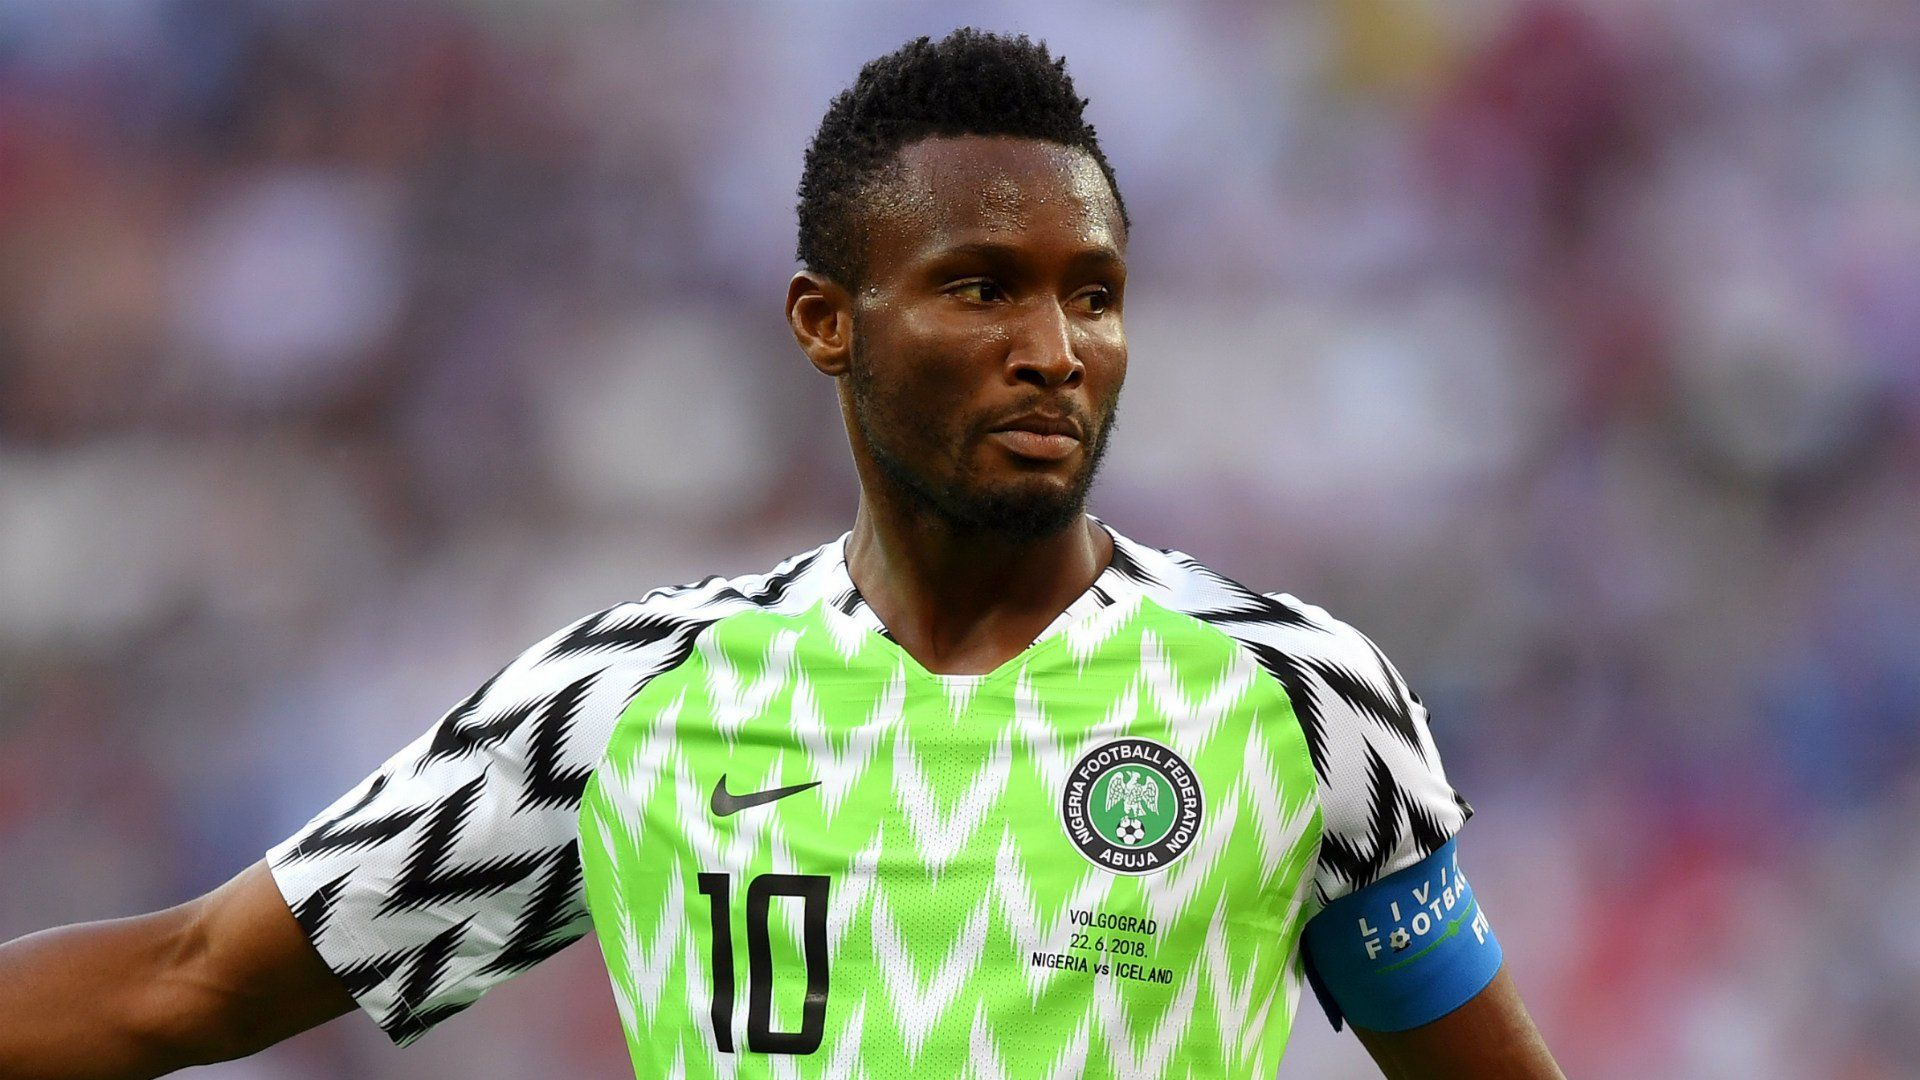 Nigeria Vs South Africa What Mikel Obi Told Nff President Pinnick Https Ift Tt 2jqbbem Mikel Obi Chelsea Players Chelsea Today